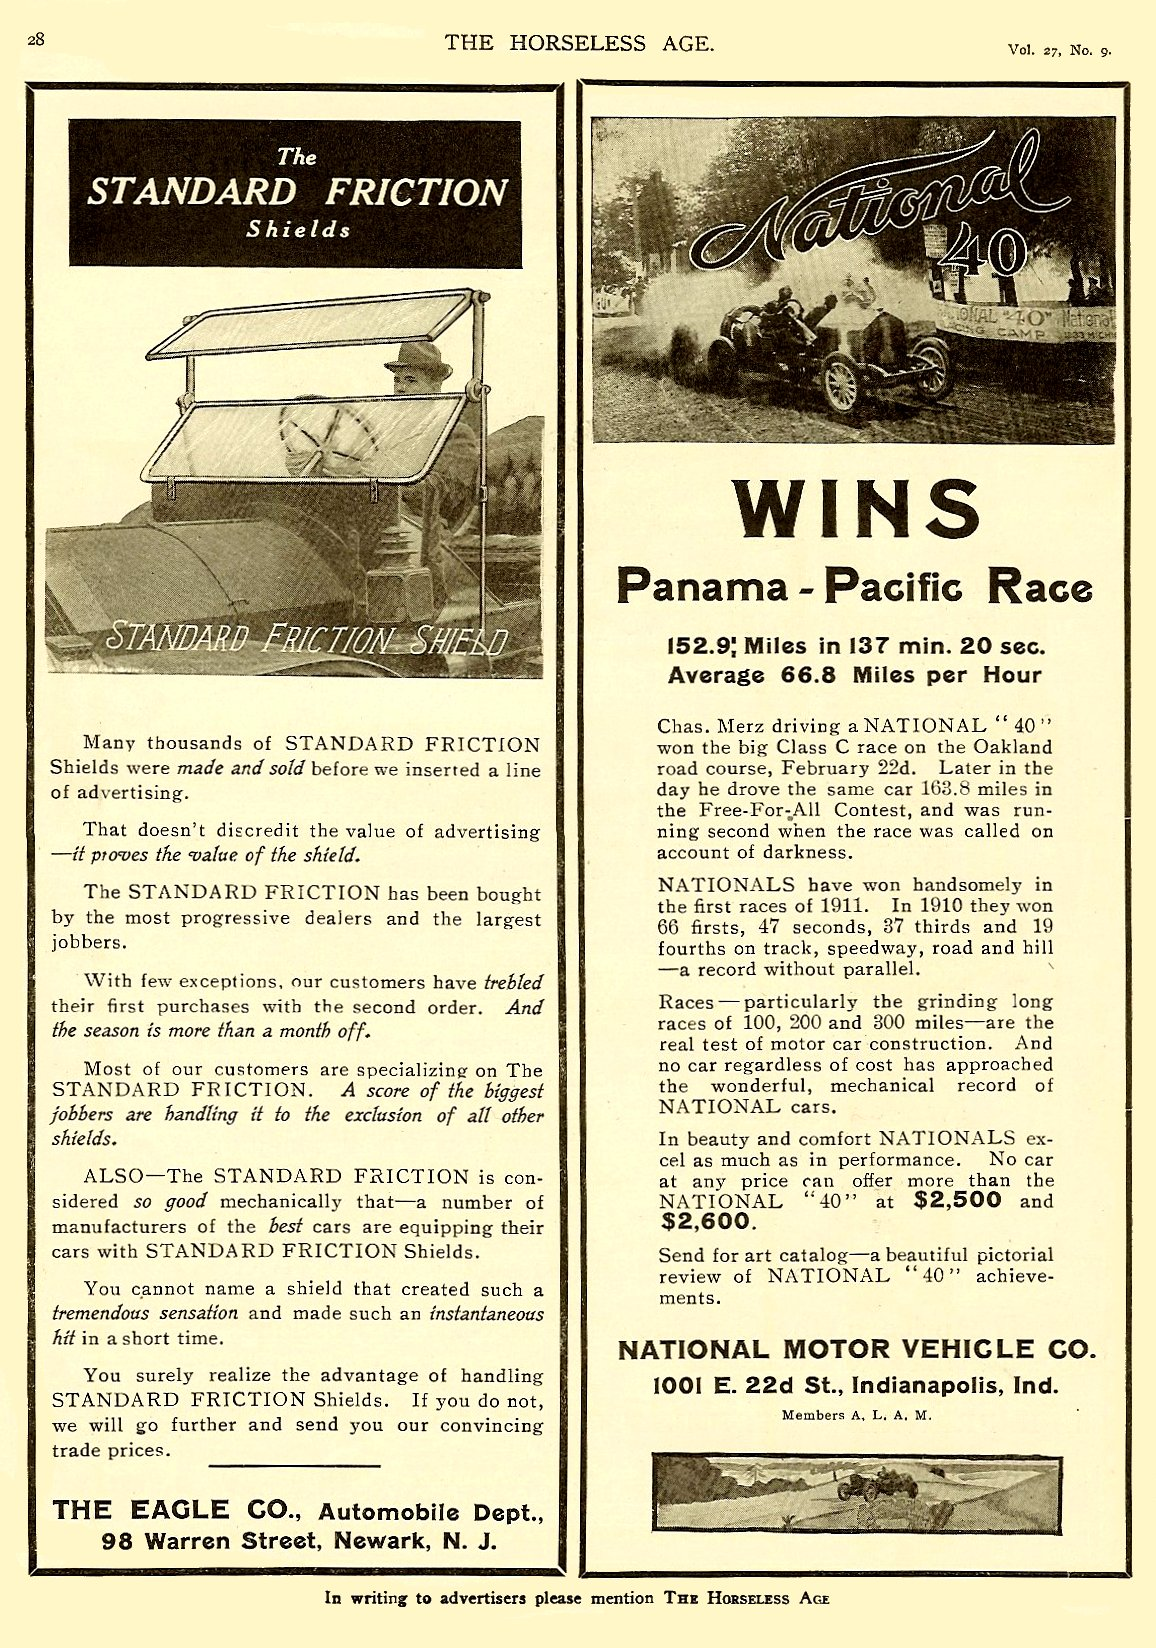 1911 3 1 NATIONAL March 1 National WINS Panama-Pacific Race THE HORSELESS AGE March 1, 1911 Vol. 27 No. 9 9″x12″ page 28